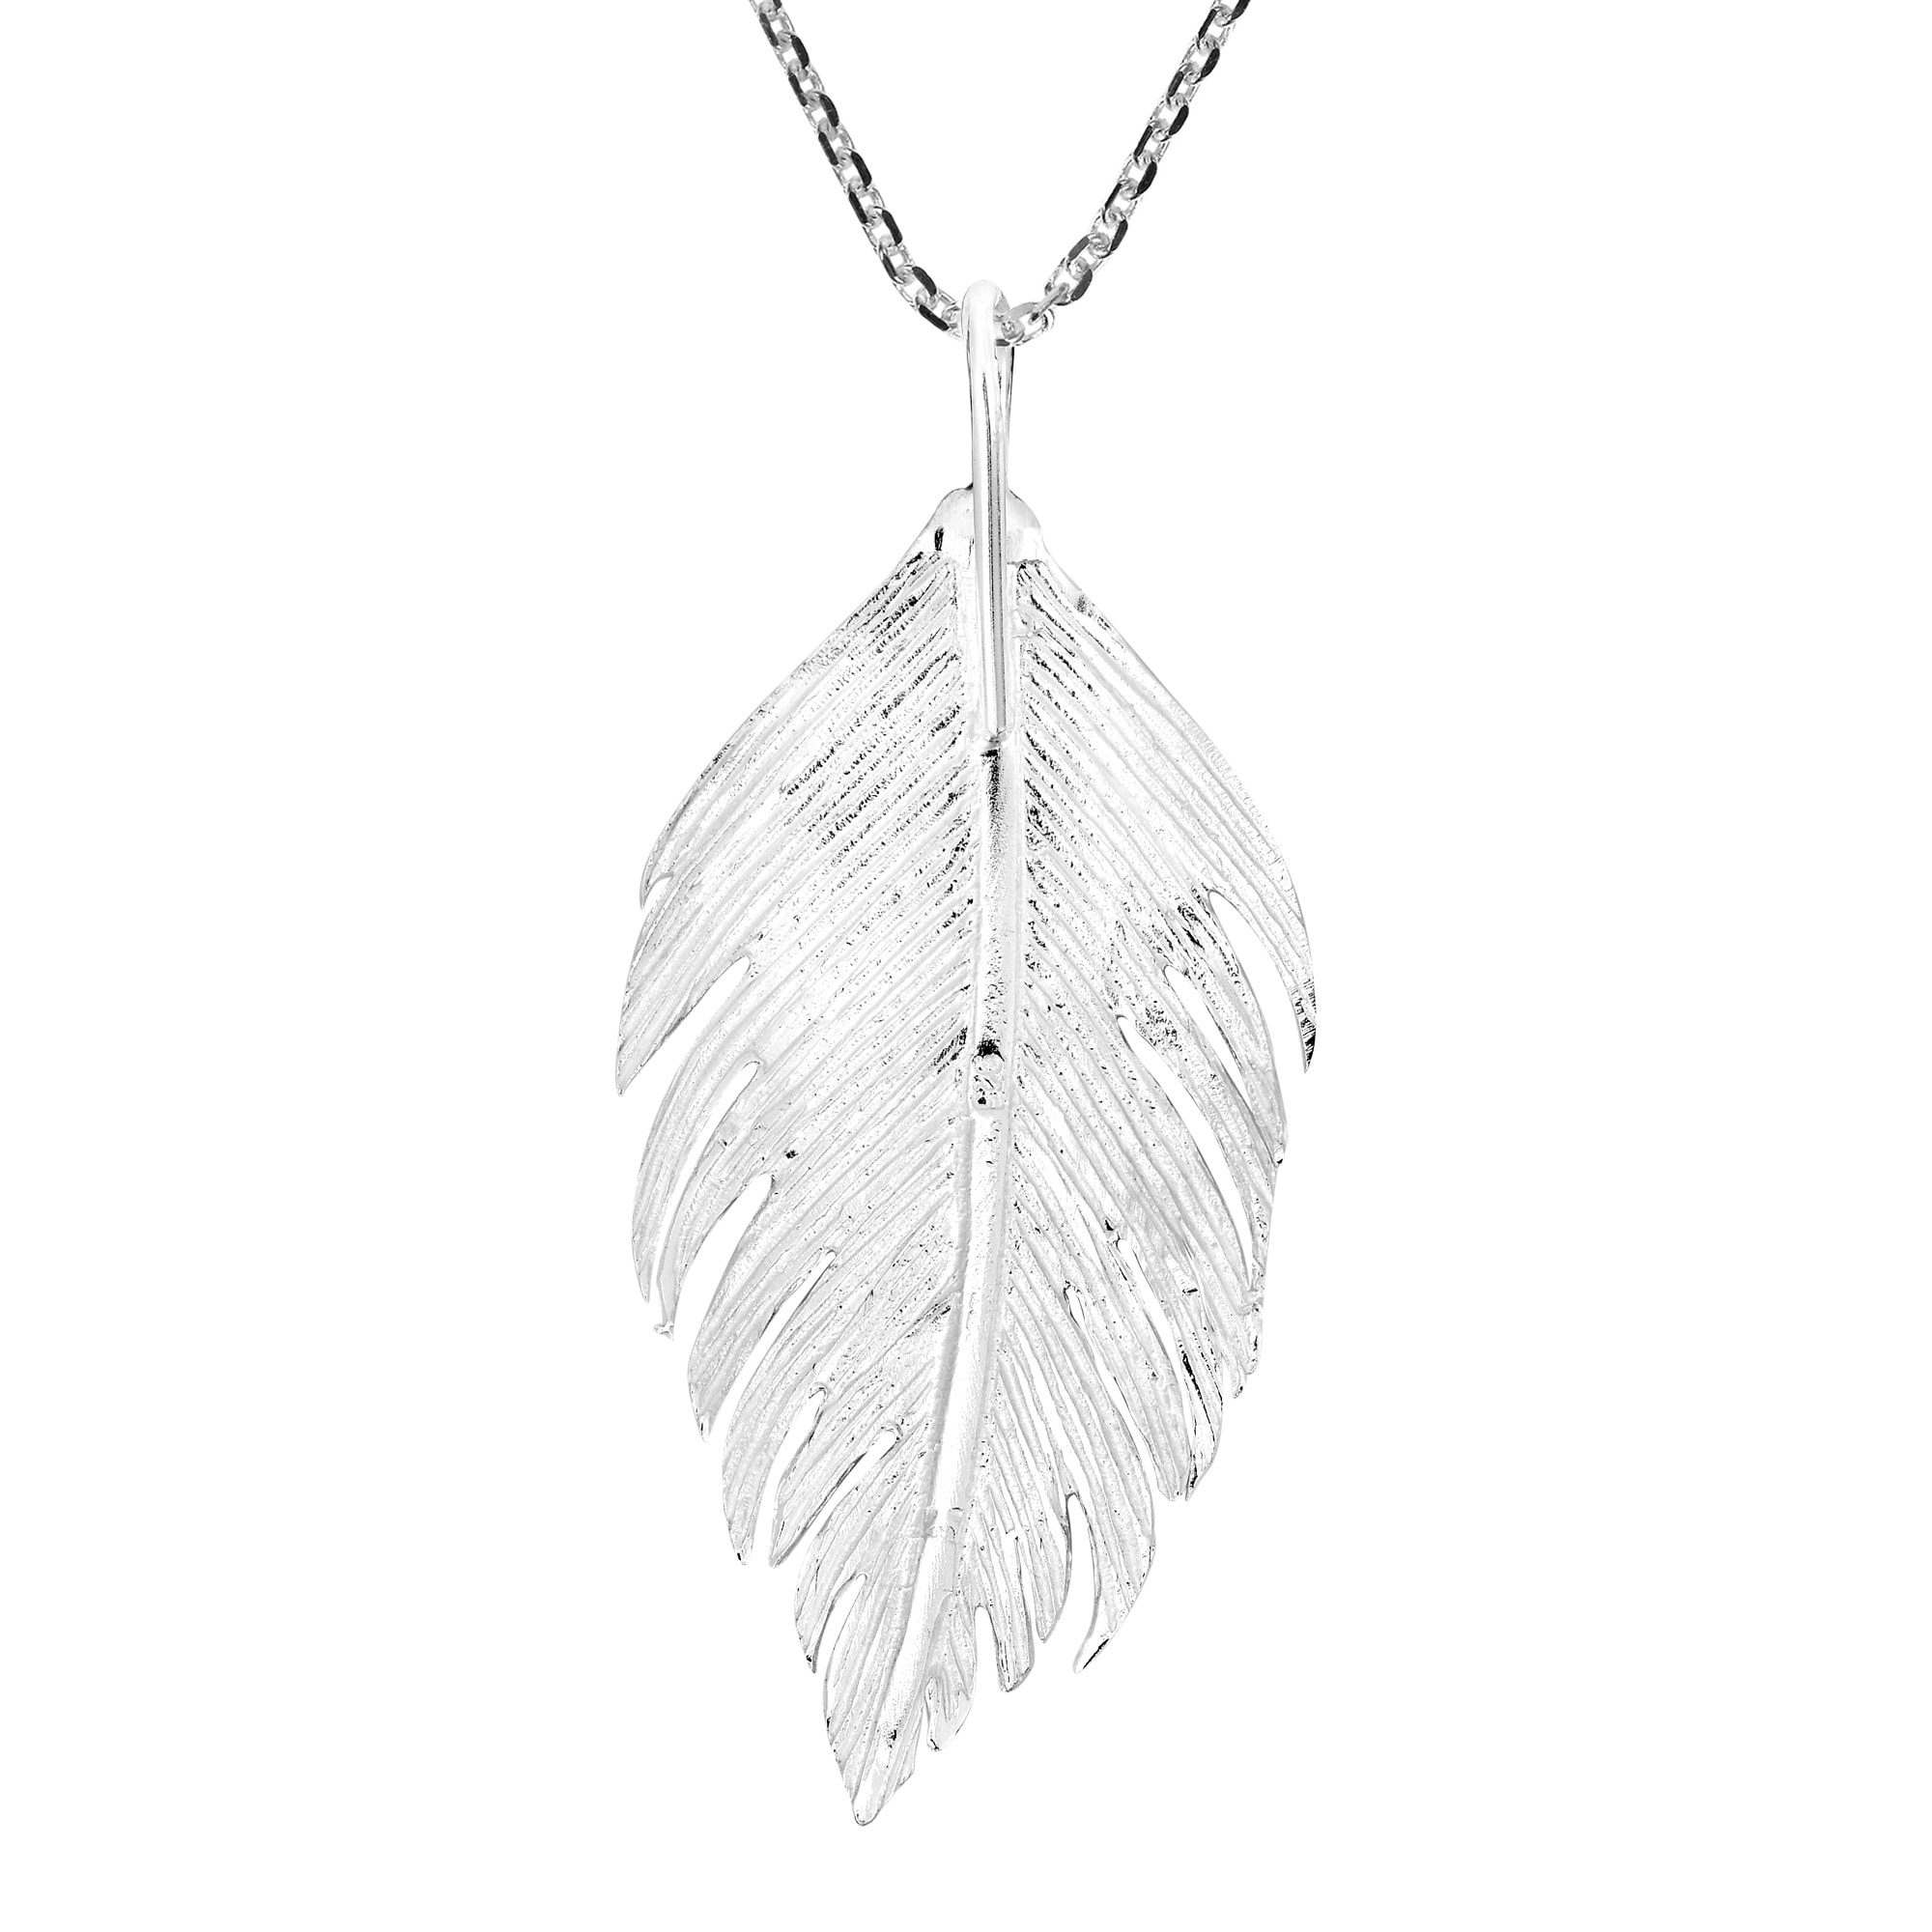 5454c289121f53 Handmade eautifully Detailed Sterling Silver Feather Pendant Necklace  (Thailand)